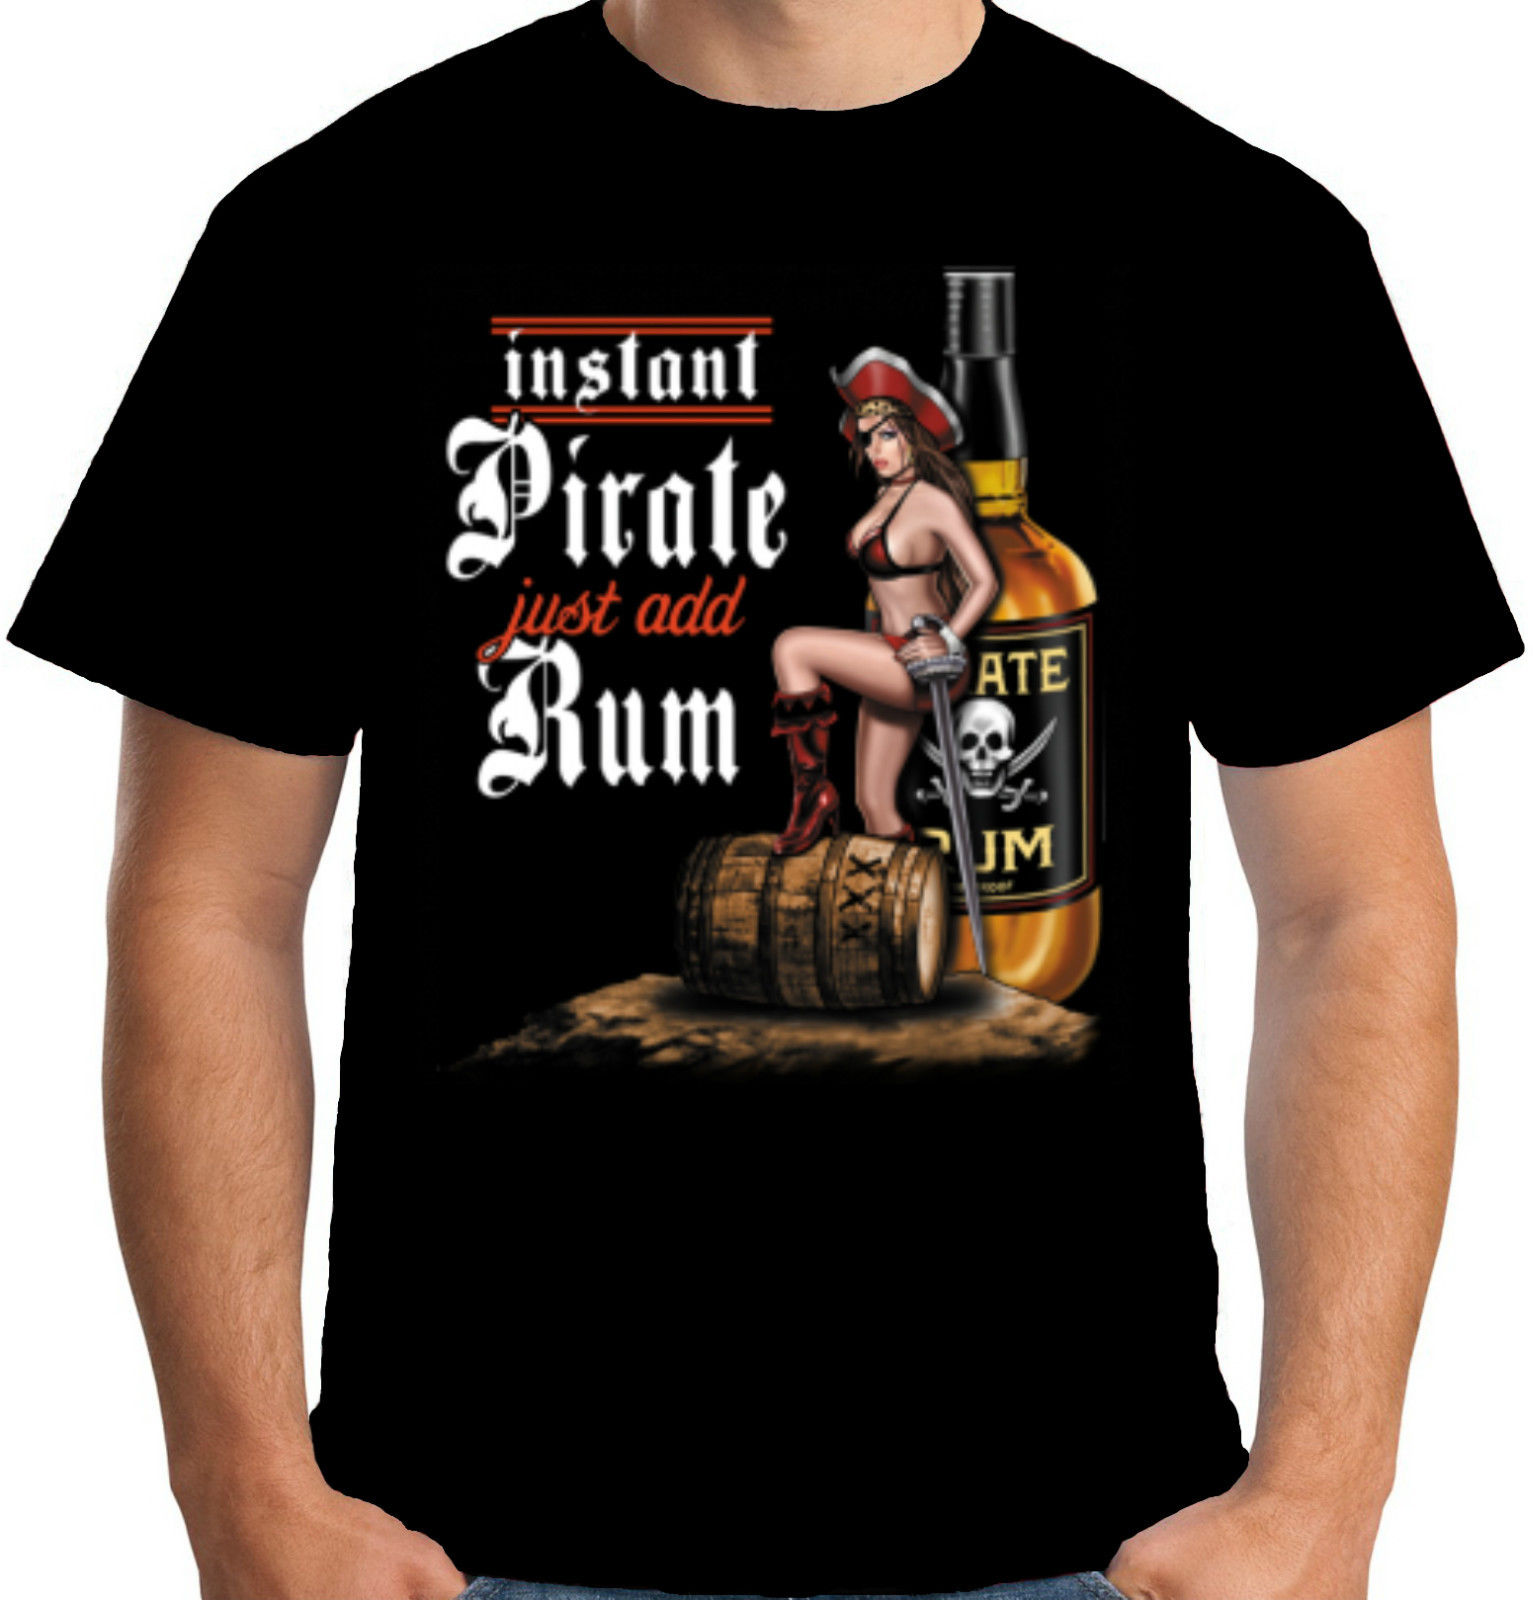 Velocitee Mens Instant Pirate T Shirt Evil Horror Rum Caribbean Drinking W13437 New Men Summer Tops Casuals Shirts